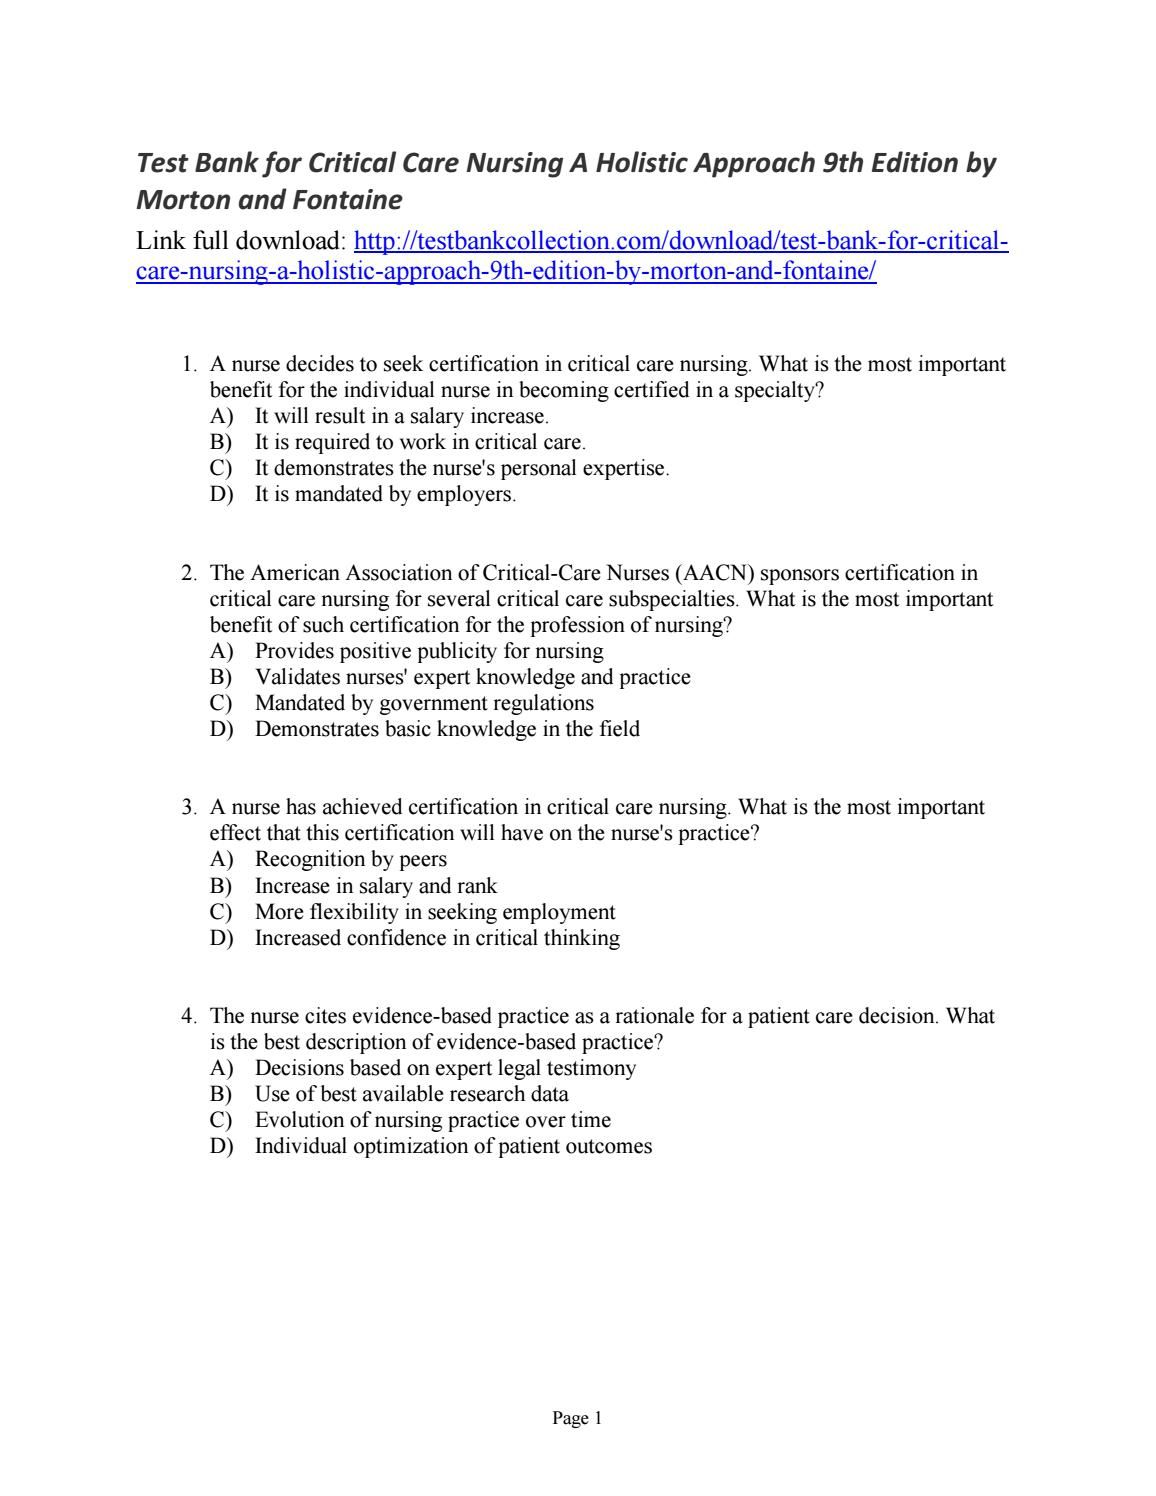 Free Resume Sample » critical care nursing certification | Resume Sample